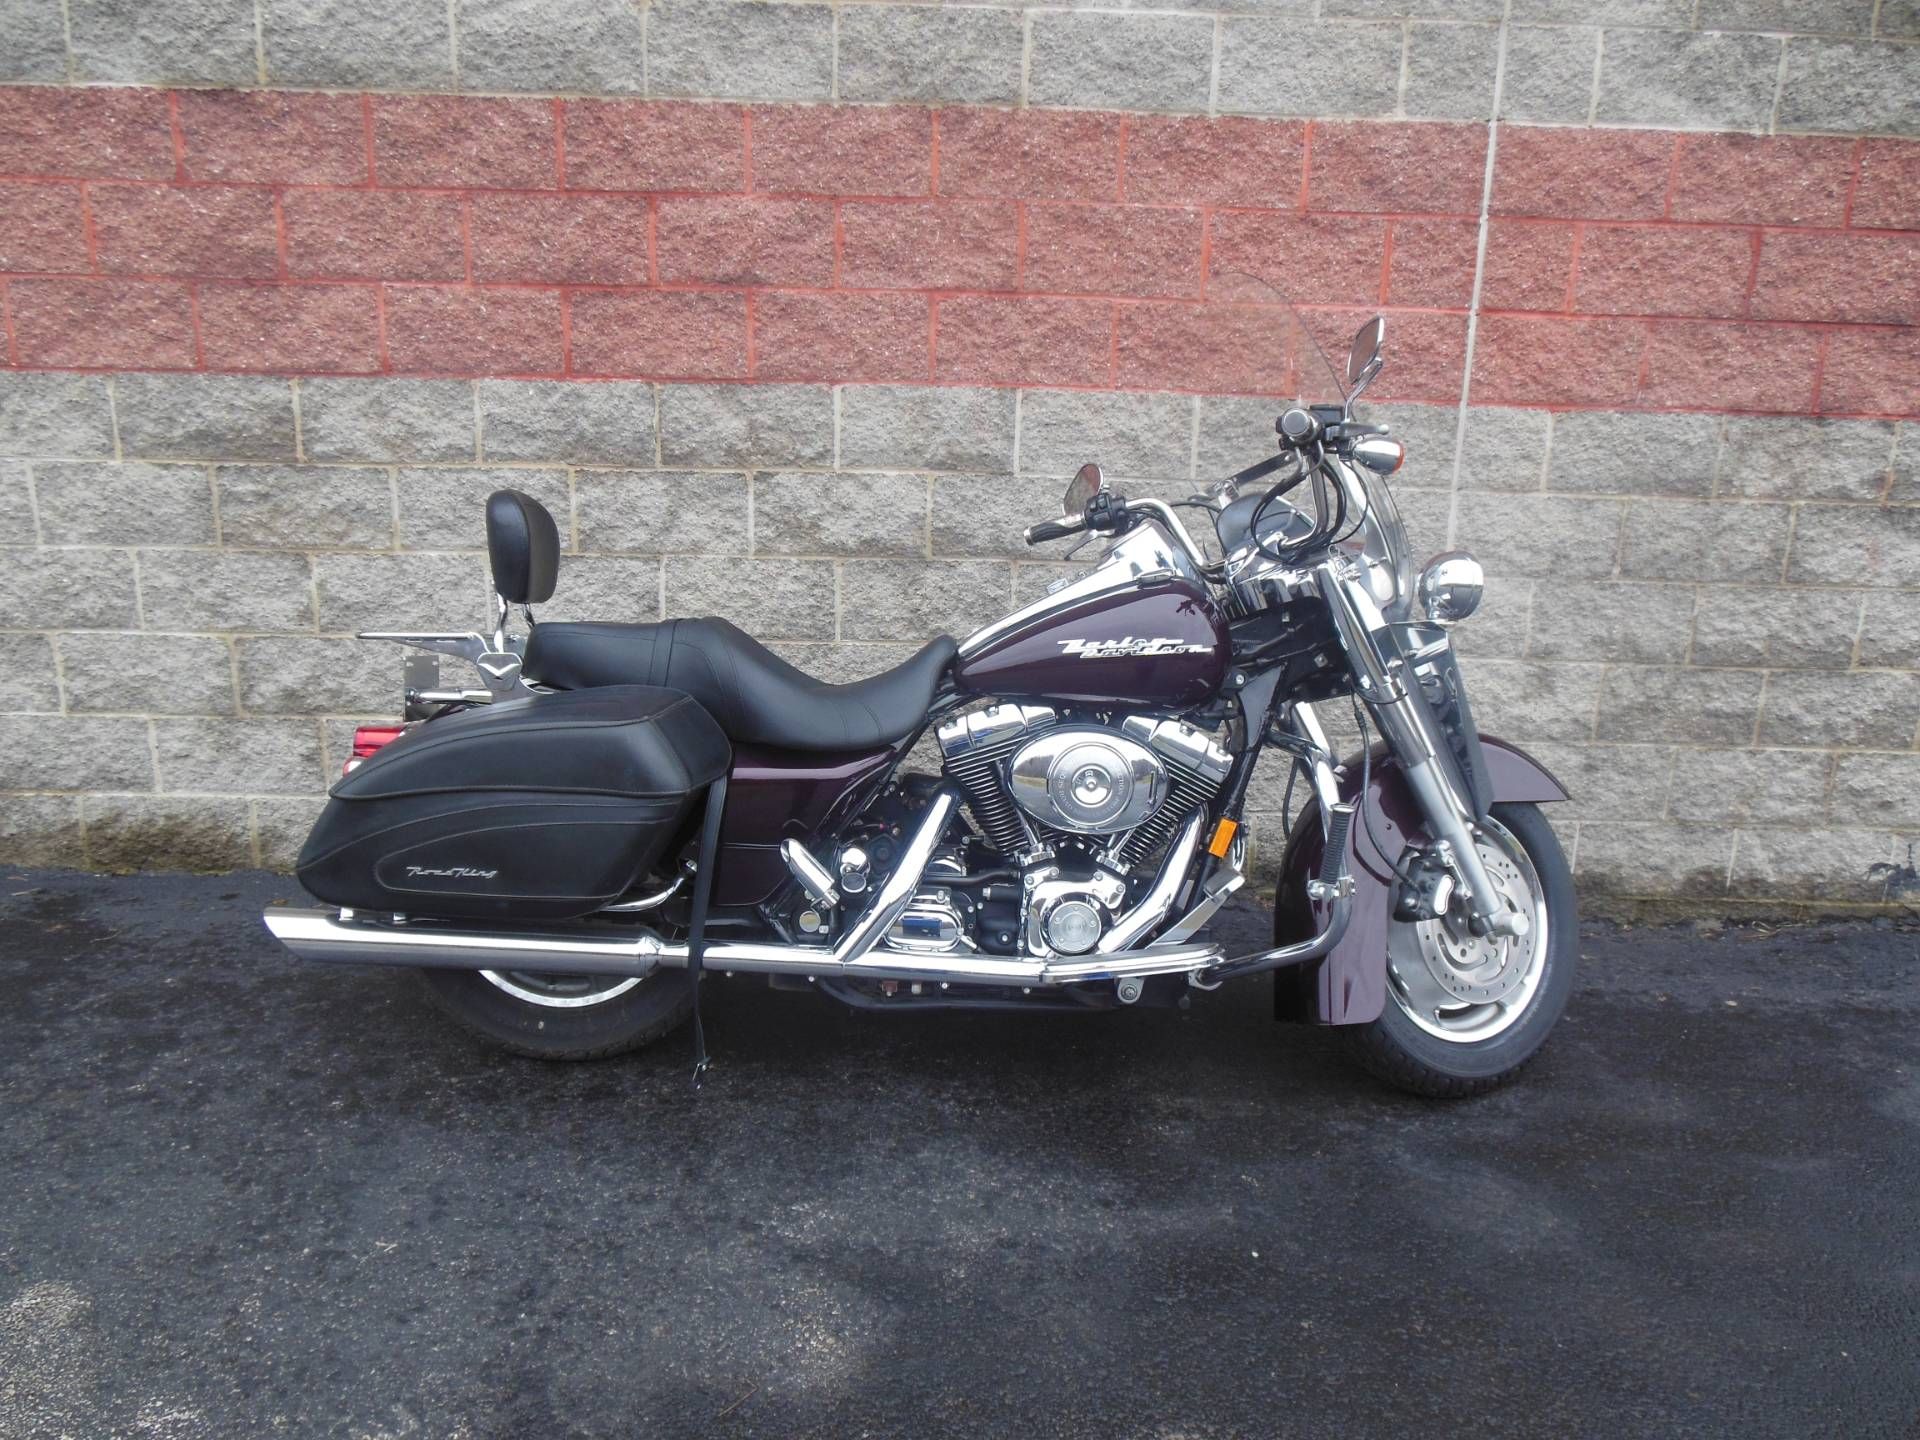 used 2005 harley davidson flhrs flhrsi road king custom motorcycles in galeton pa. Black Bedroom Furniture Sets. Home Design Ideas